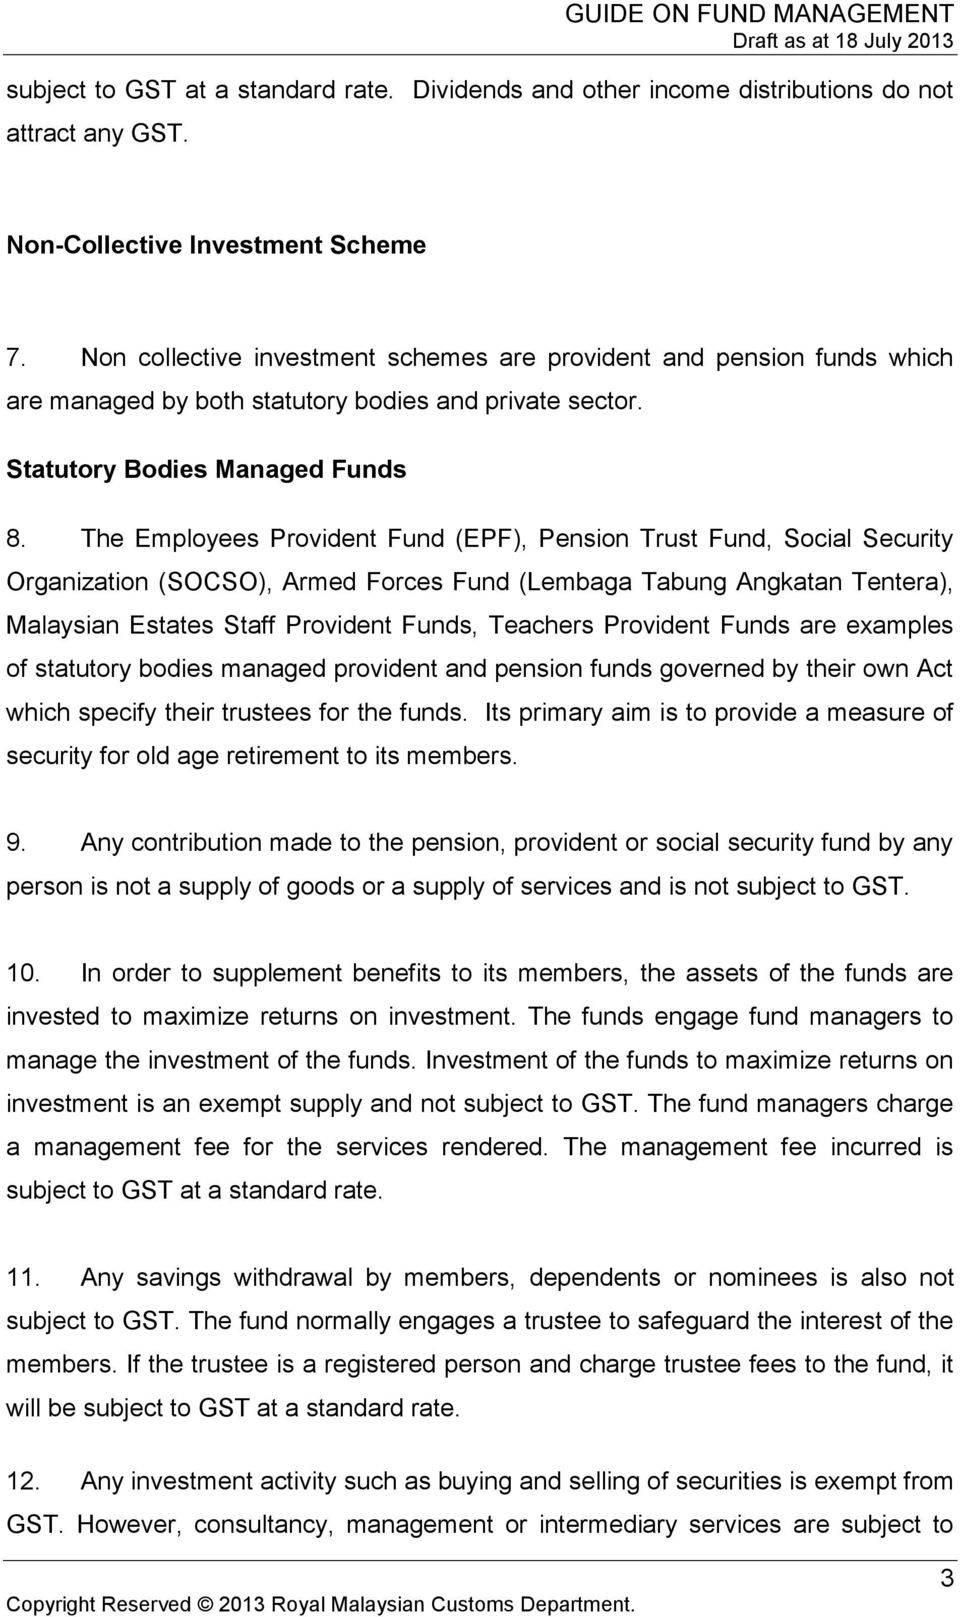 The Employees Provident Fund (EPF), Pension Trust Fund, Social Security Organization (SOCSO), Armed Forces Fund (Lembaga Tabung Angkatan Tentera), Malaysian Estates Staff Provident Funds, Teachers